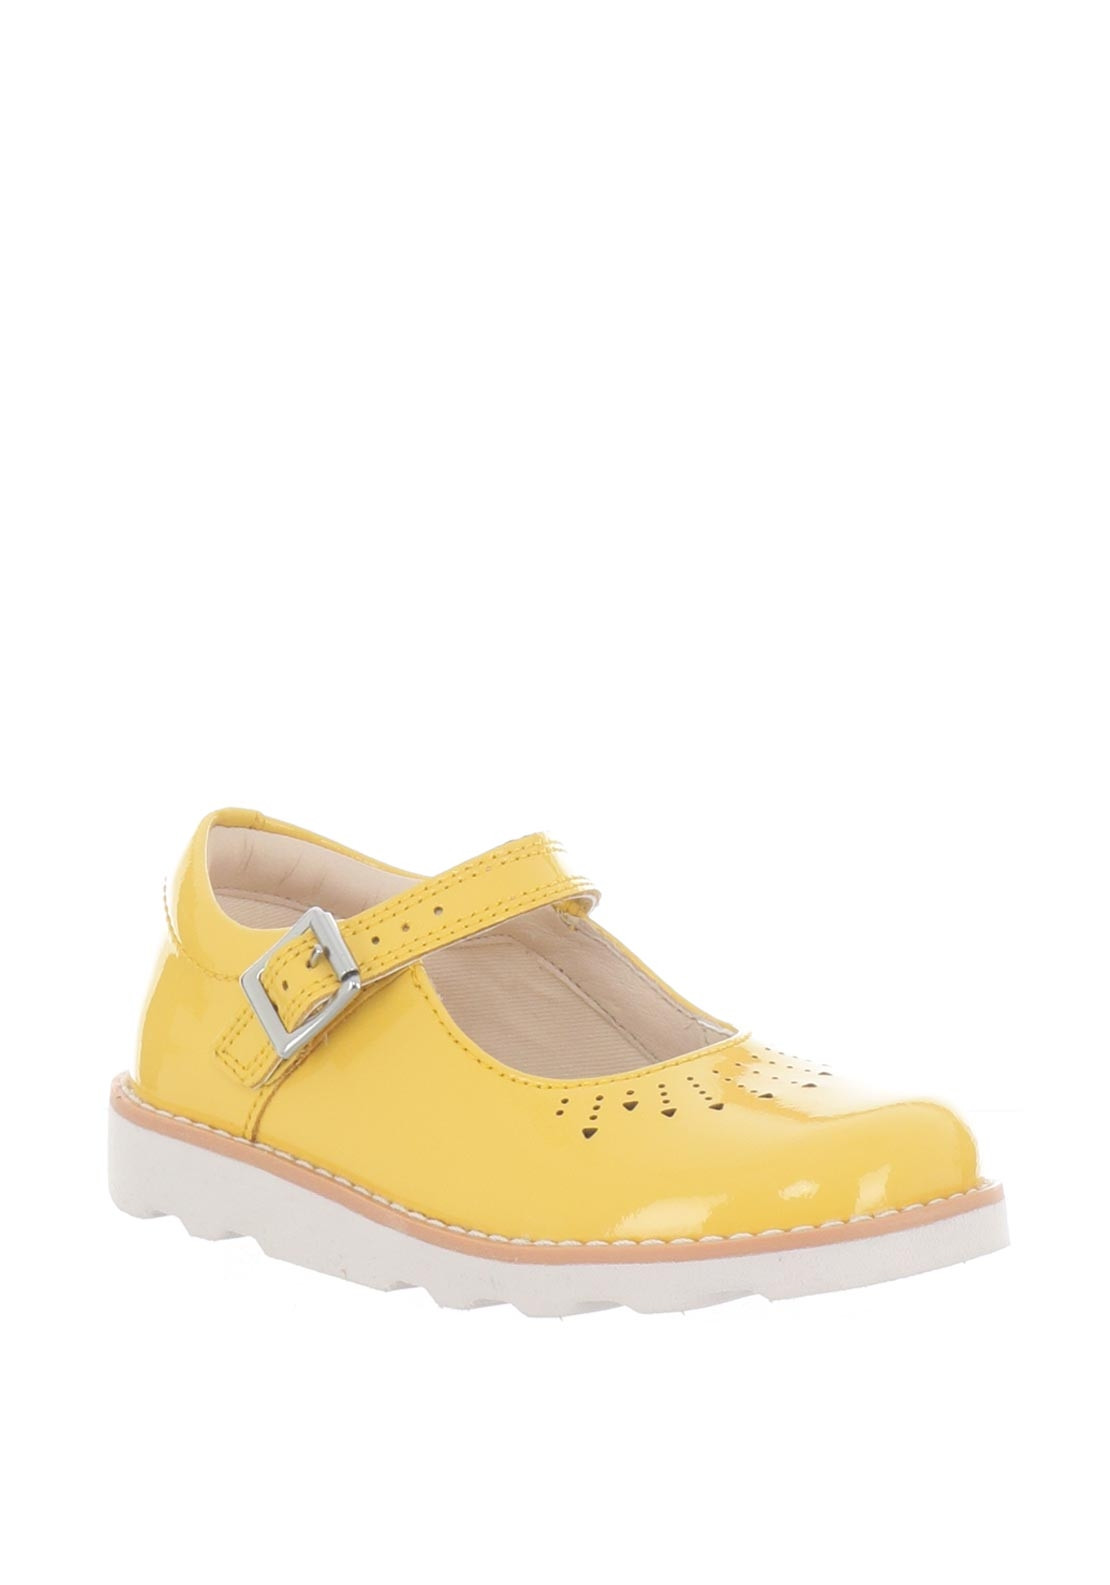 322c46cb2527a9 Clarks Girls Crown Jump Patent Leather Shoes, Yellow | McElhinneys